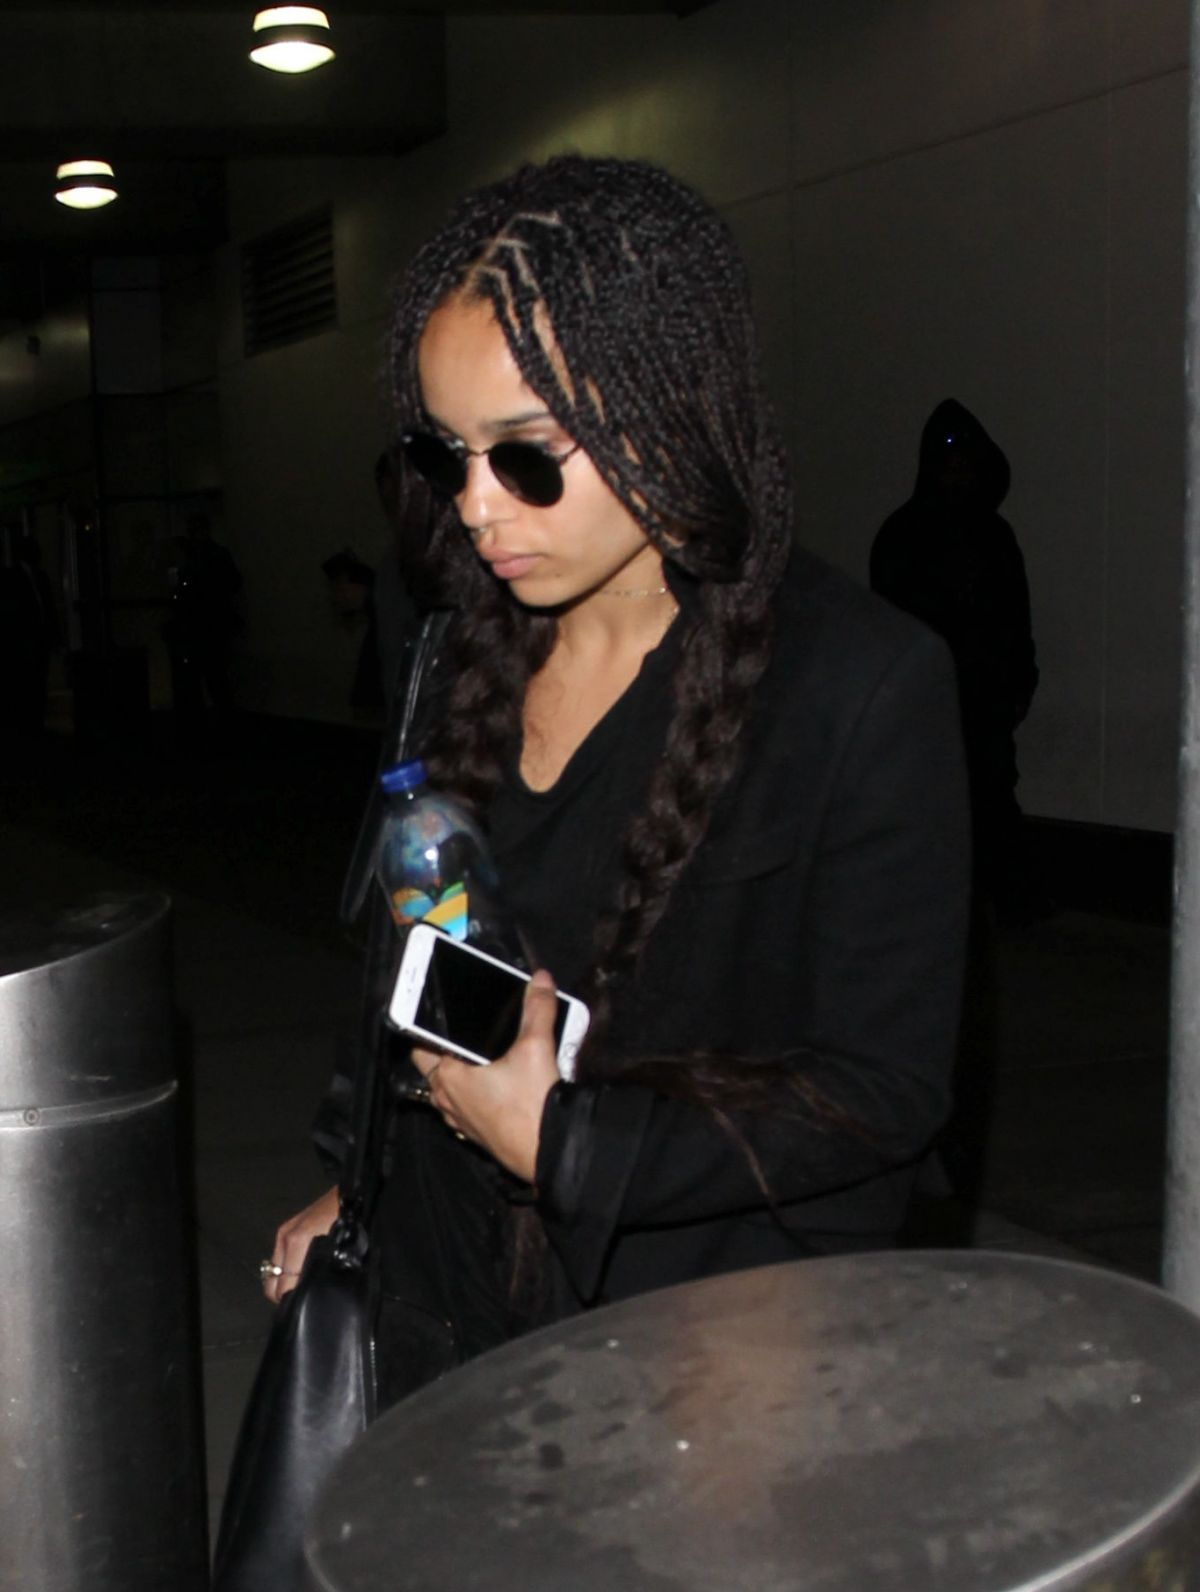 ZOE KRAVITZ at JFK Airport in New York 05/03/2015